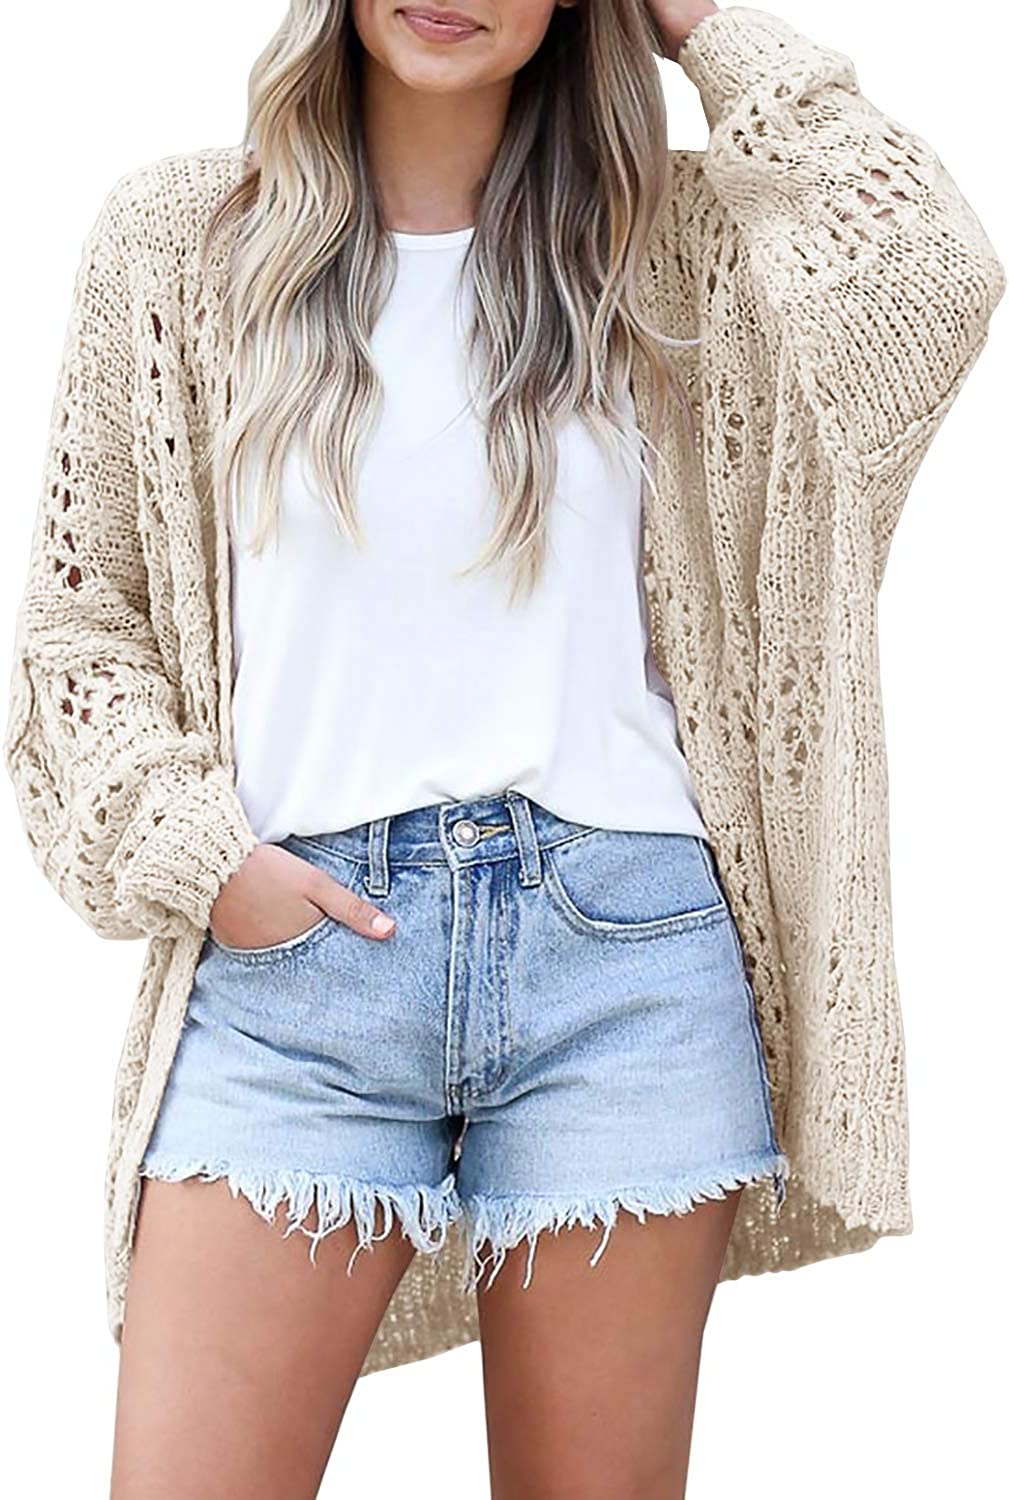 Gnpolo Lightweight Summer Cardigan for Women Spring Netted Crochet Cardigans Sweaters